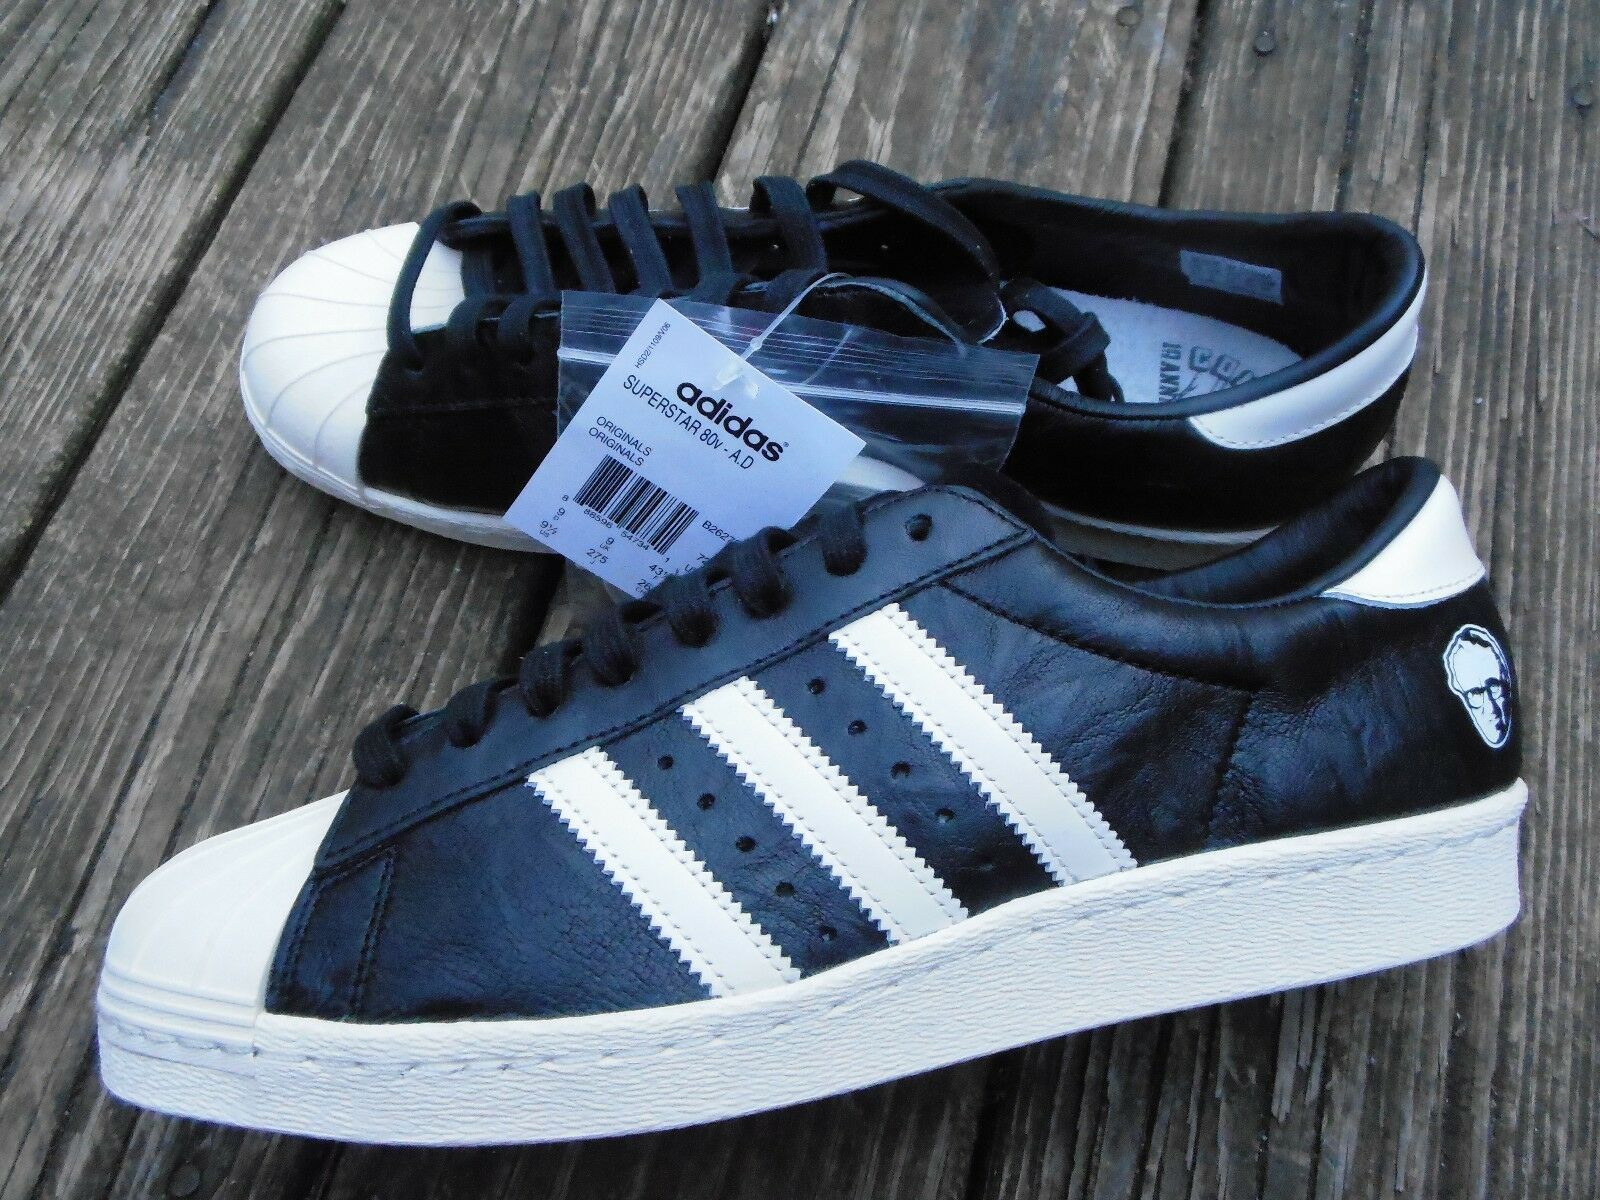 premium selection f0184 20dbe Adidas Superstar 80v Adi Dessler A.D. B26279 black shoes sneaker 9.5  Anniversary low-cost